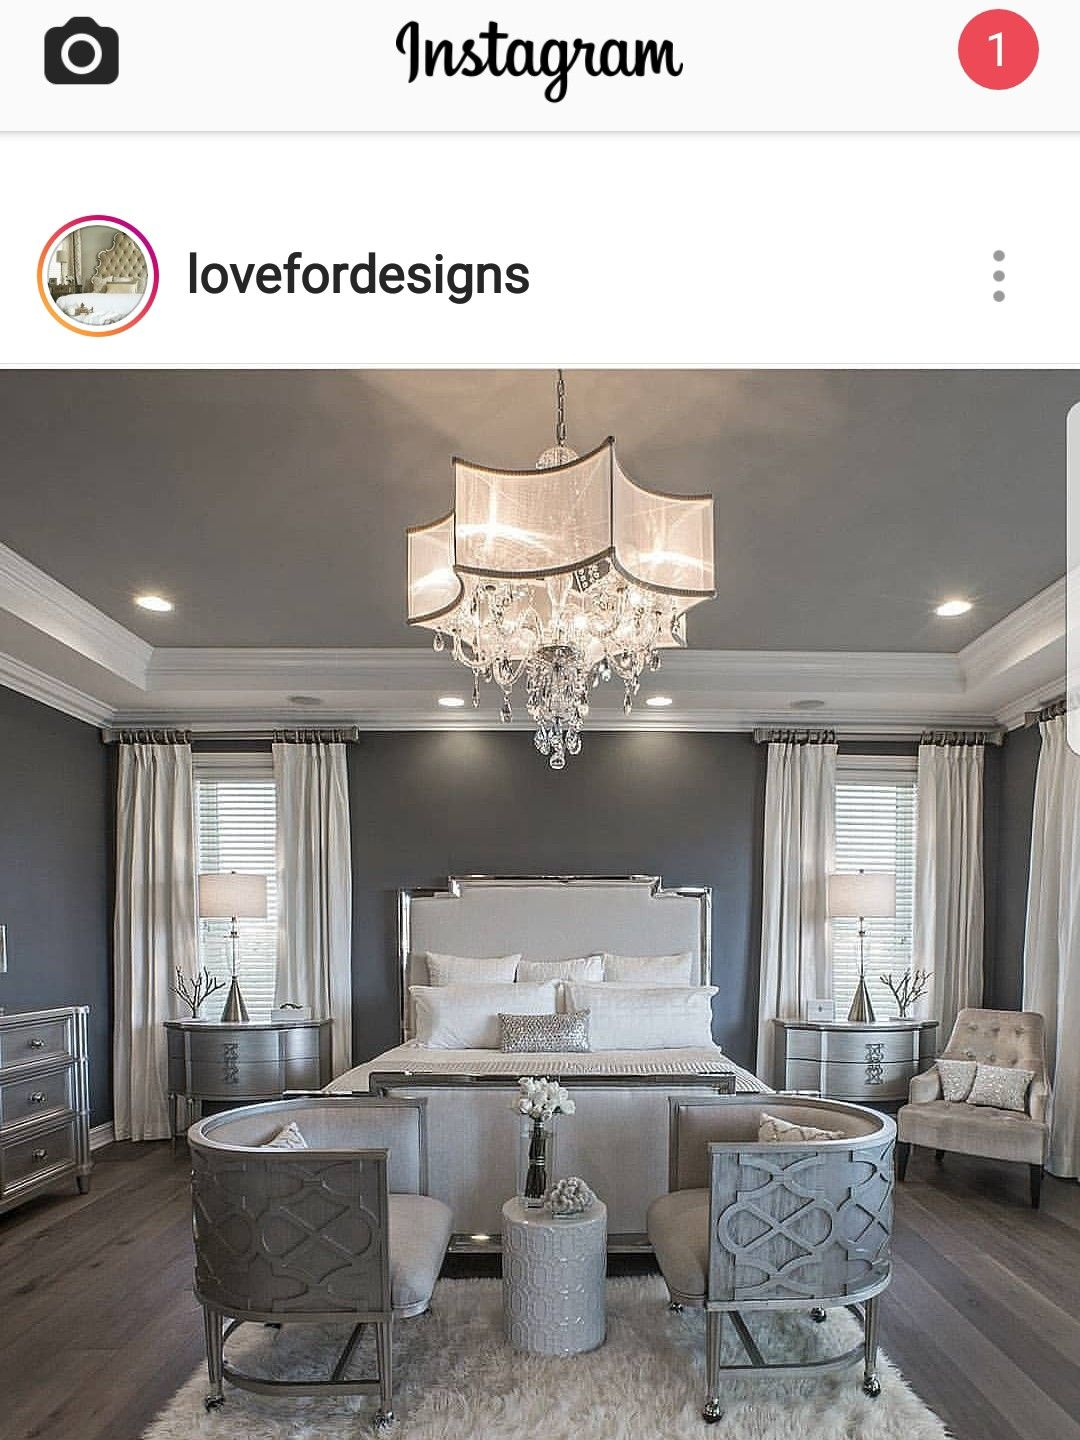 Very Nice Bedroom I Need A Splash Of Color Though Luxury Bedroom Master Luxurious Bedrooms Luxury Master Bedroom Design